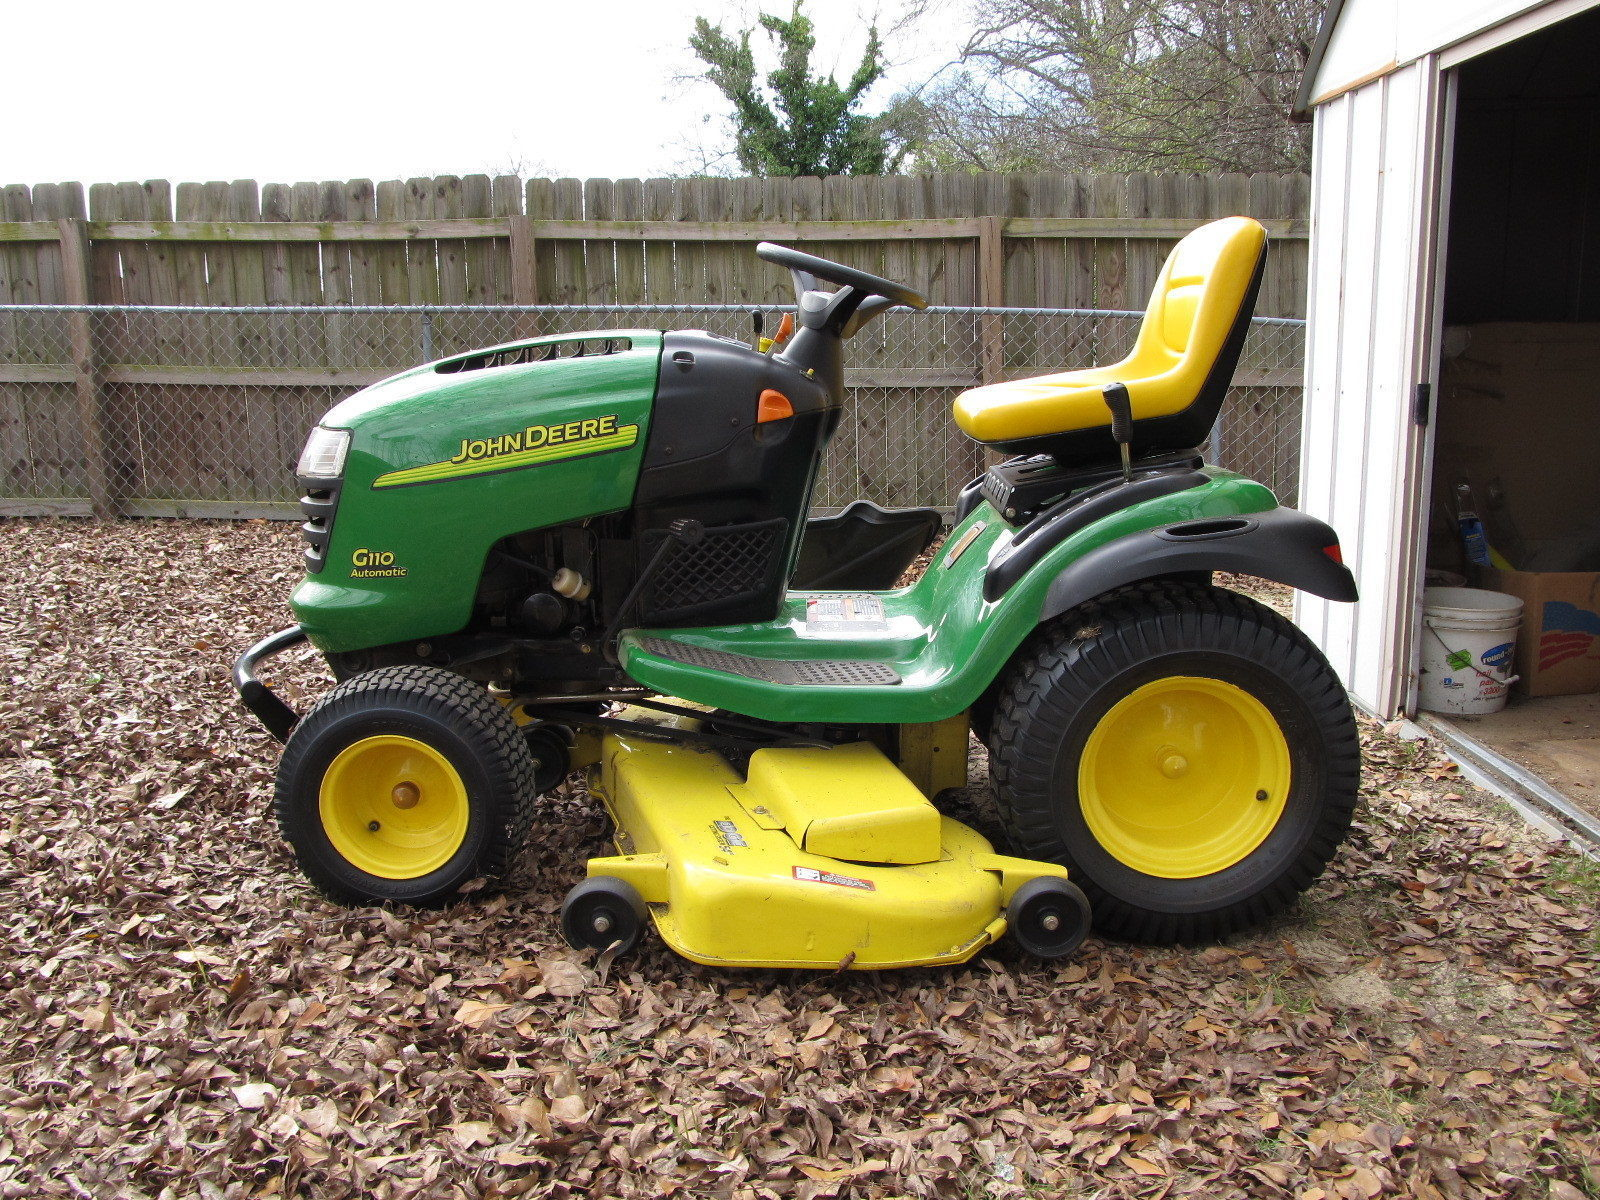 Racing Lawn Mower Engine >> Top 536 Complaints and Reviews about John Deere | Page 3